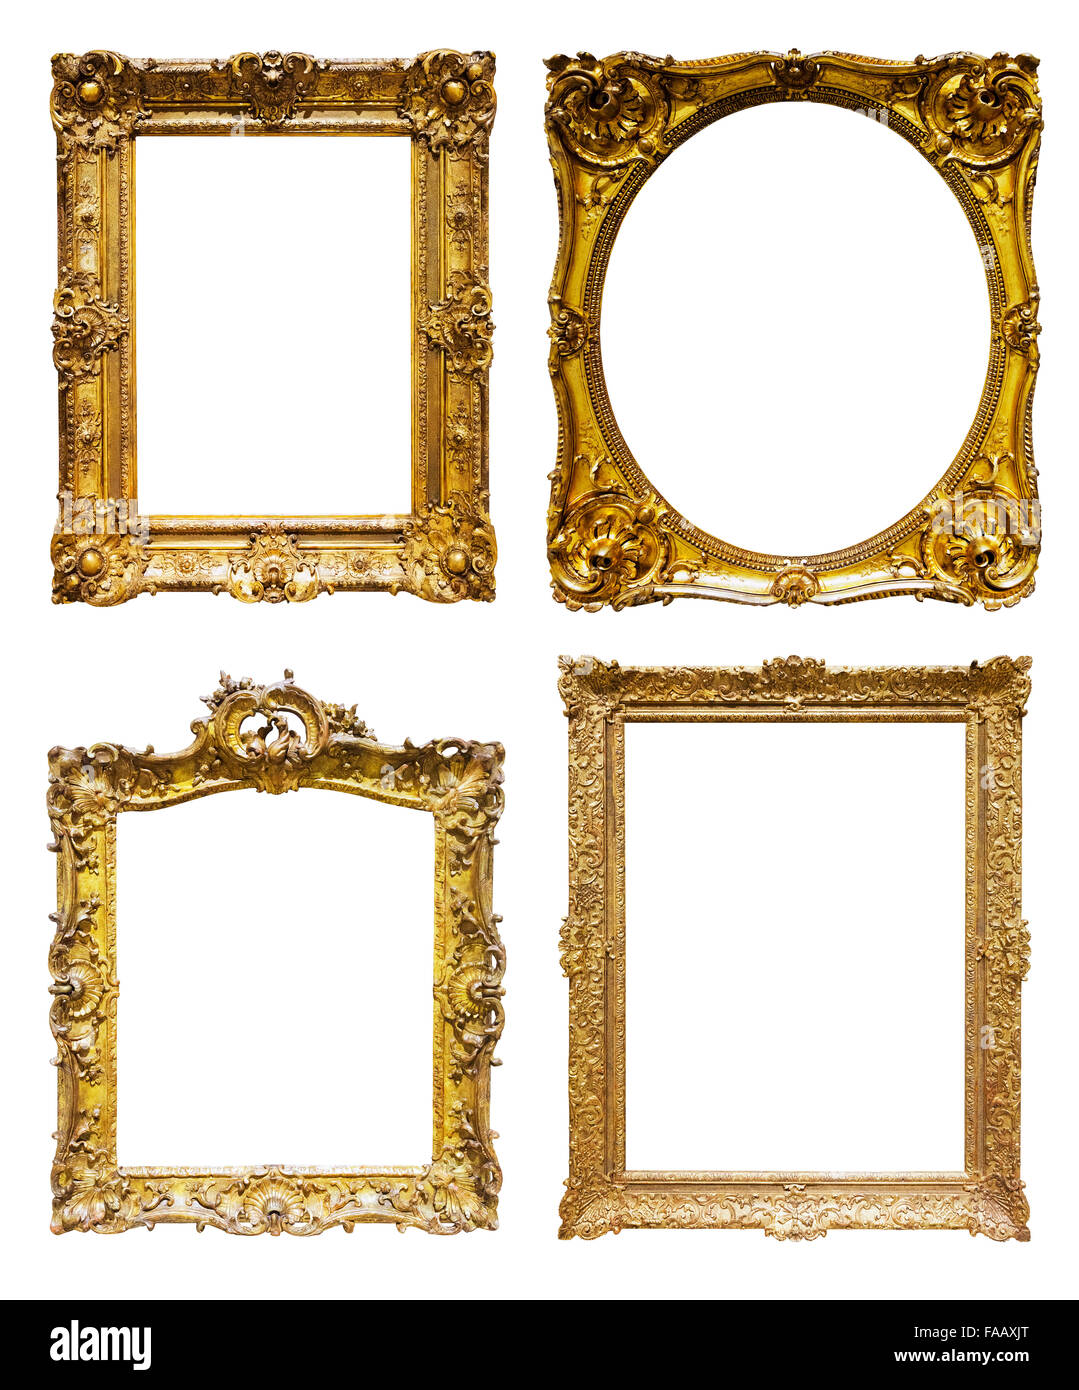 Set of old bronze frames isolated over white background may be set of old bronze frames isolated over white background may be used for photo or picture jeuxipadfo Gallery